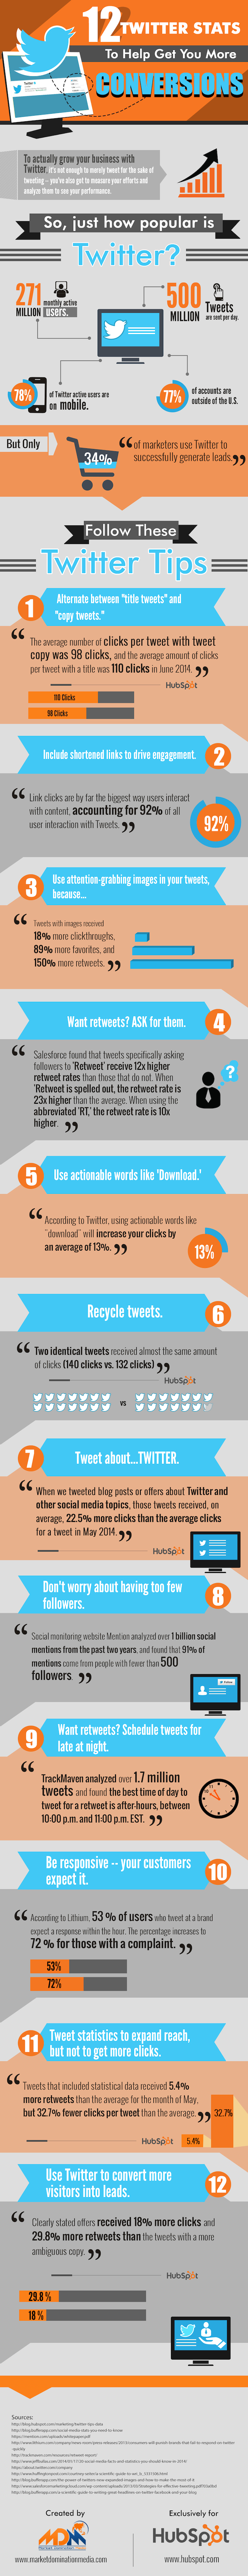 12_Twitter_Stats_to_Help_Get_You_More_Conversions_(1)